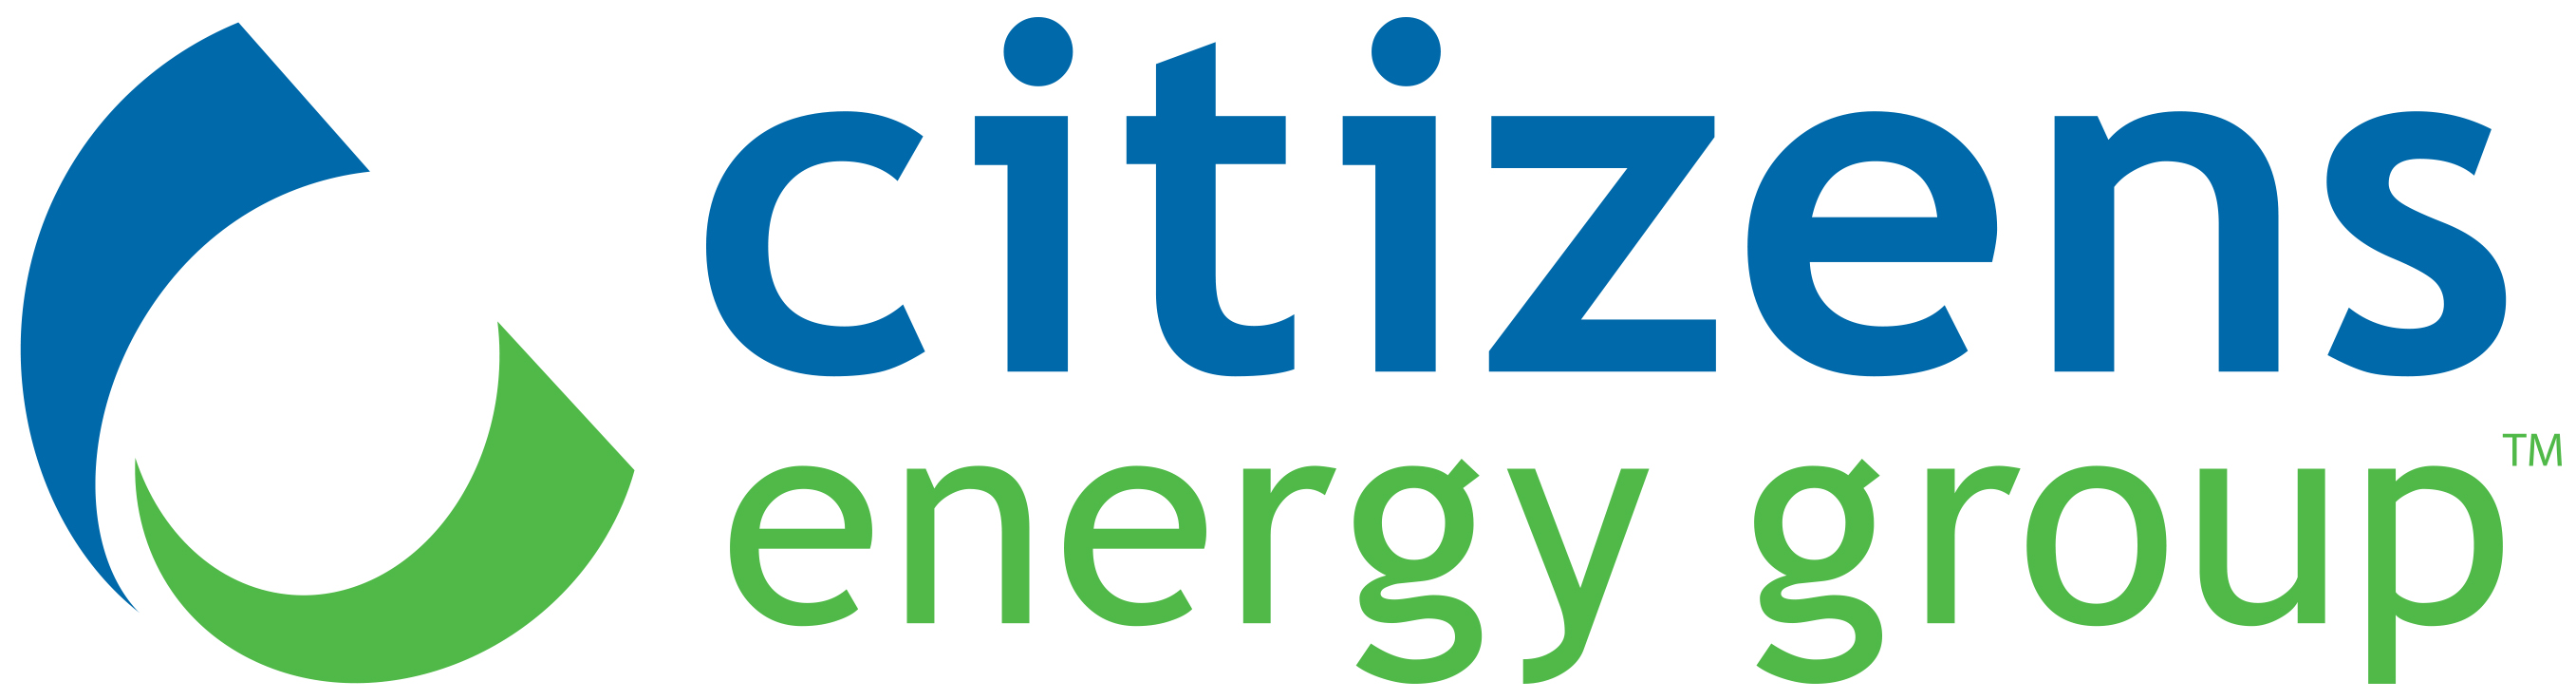 thank you to our presenting sponsor Citizens Energy Group